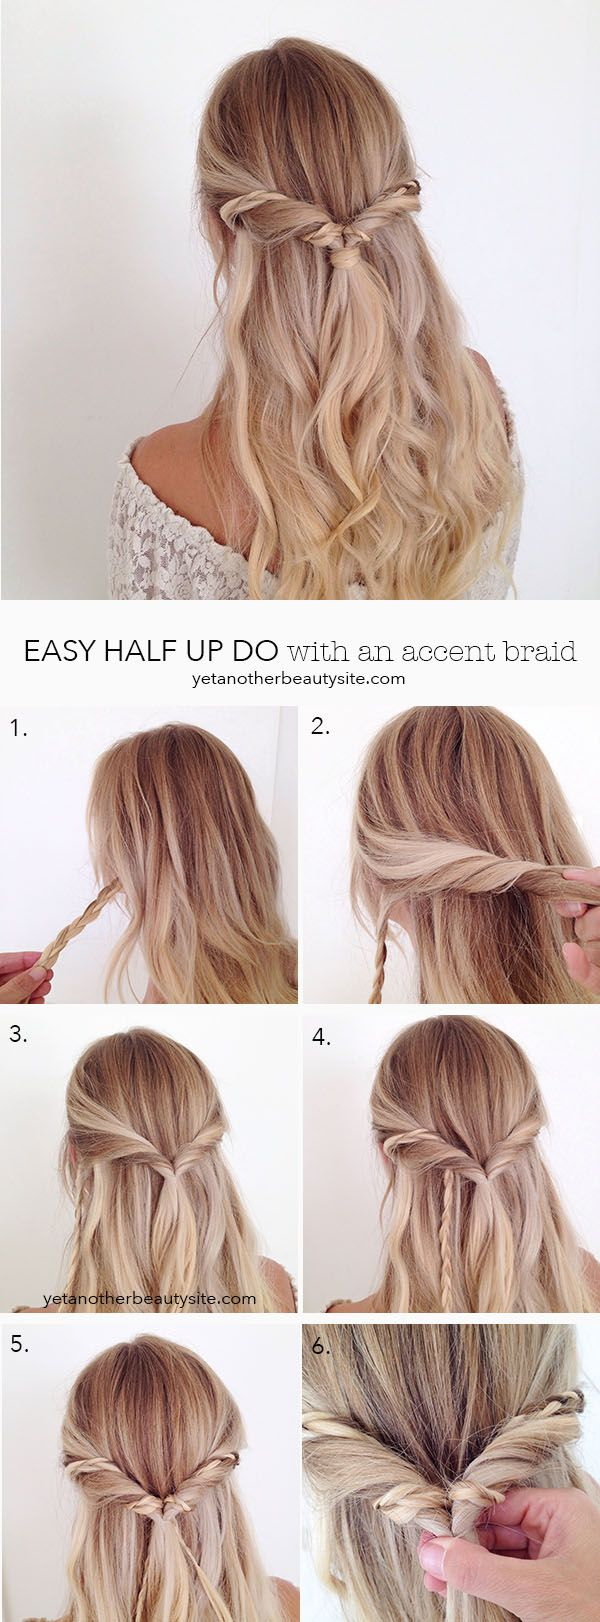 Marvelous 1000 Ideas About Easy Hairstyles On Pinterest Hairstyles For Short Hairstyles Gunalazisus